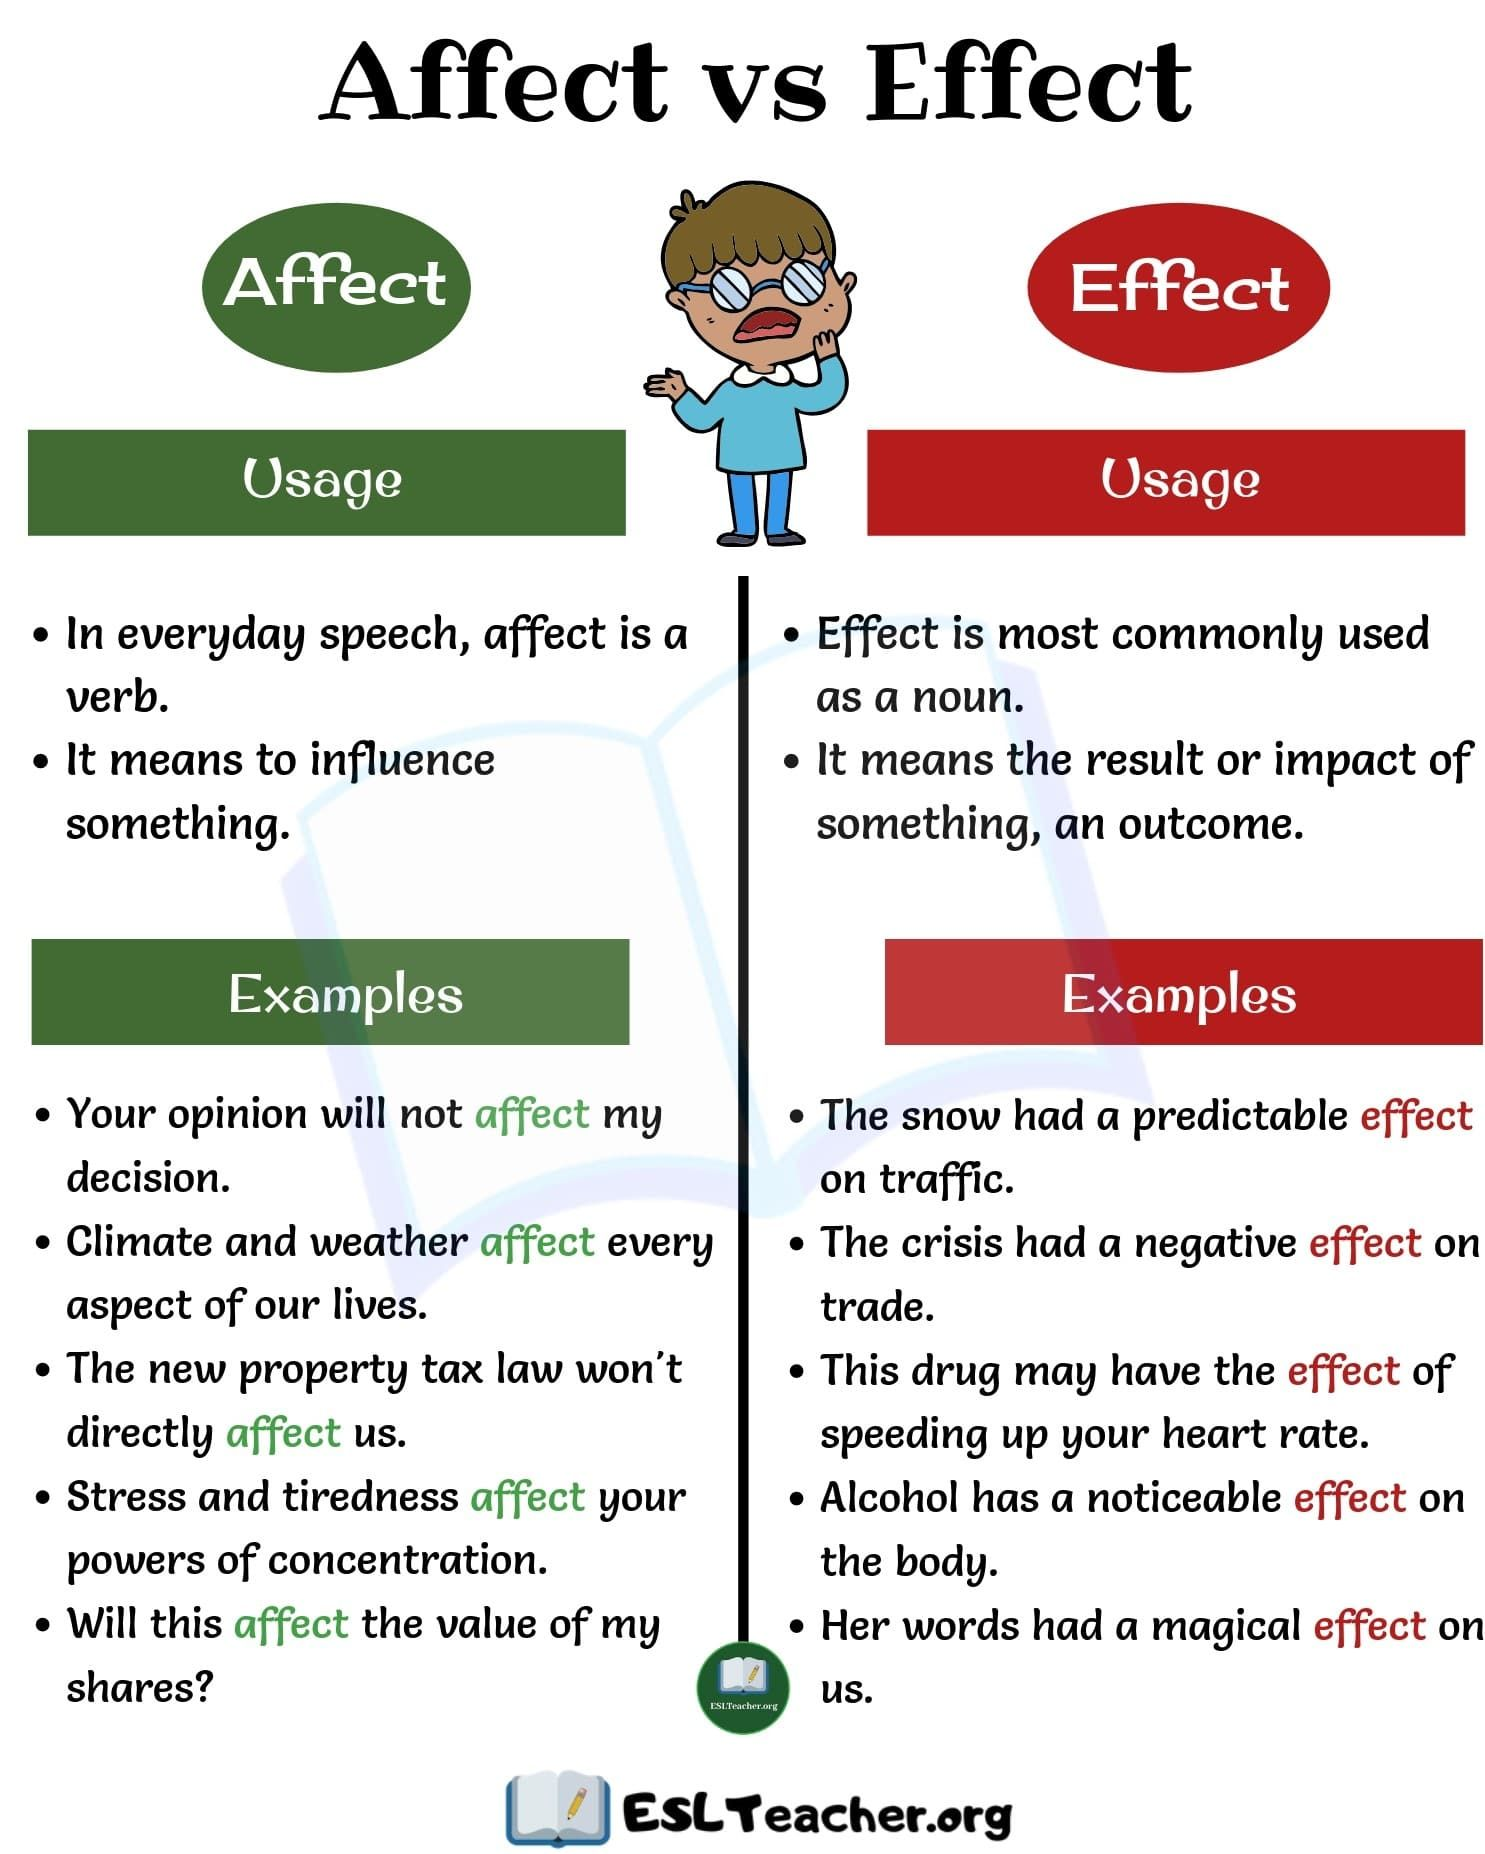 small resolution of Affect vs Effect: How to Use Effect vs Affect Correctly - ESL Teacher    Word skills